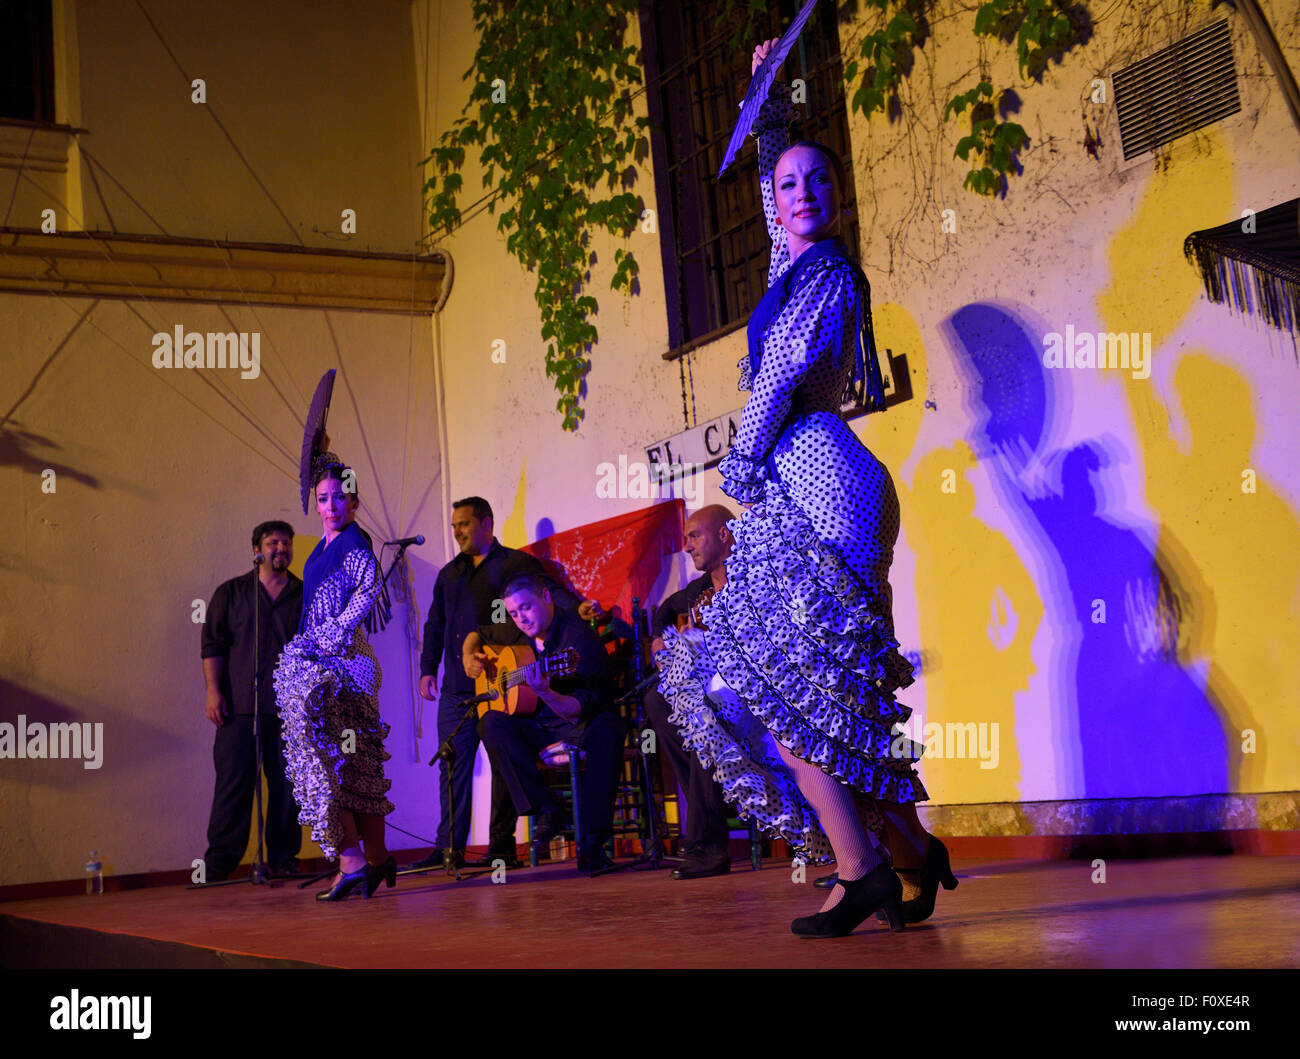 Spotlit female Flamenco dancers on stage with fans and shadows on wall in an outdoor courtyard in Cordoba Spain - Stock Image